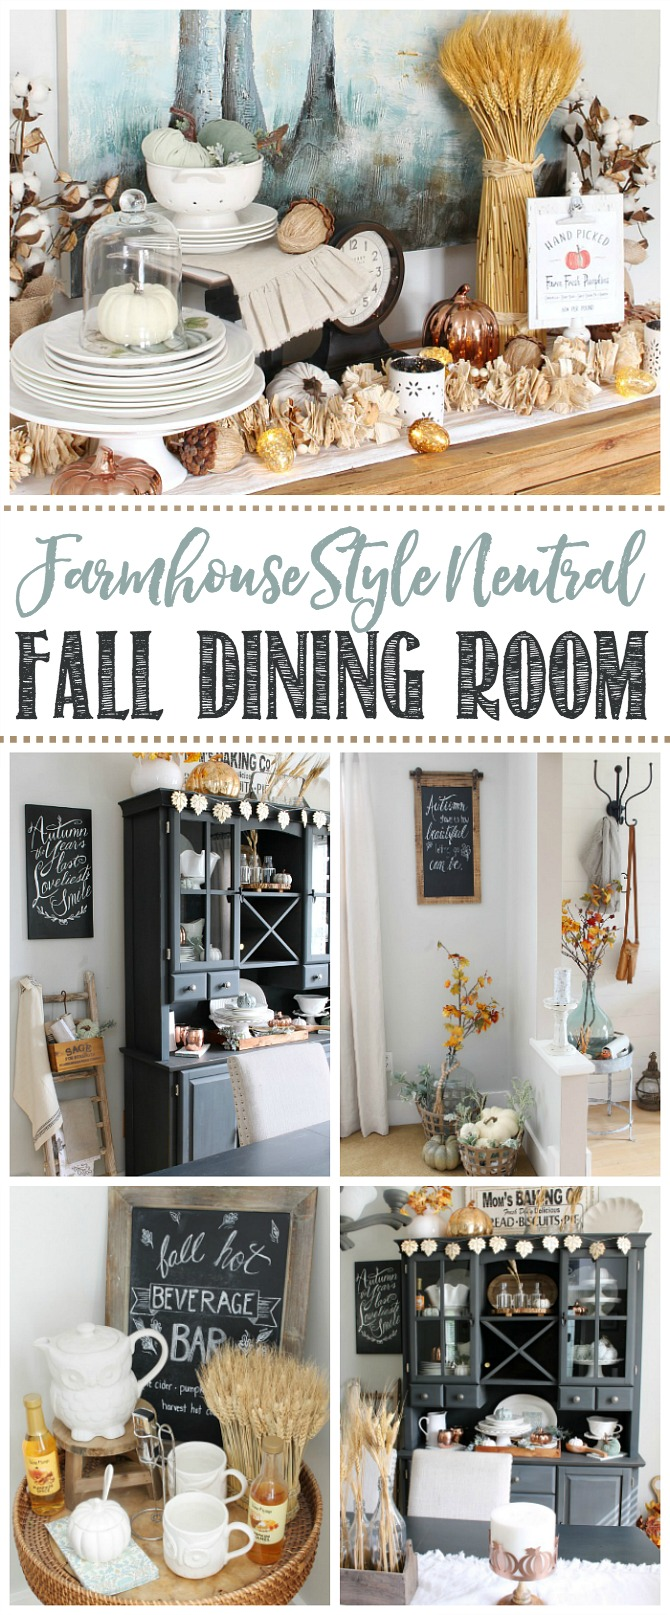 Collage of fall decorating ideas for the dining room.